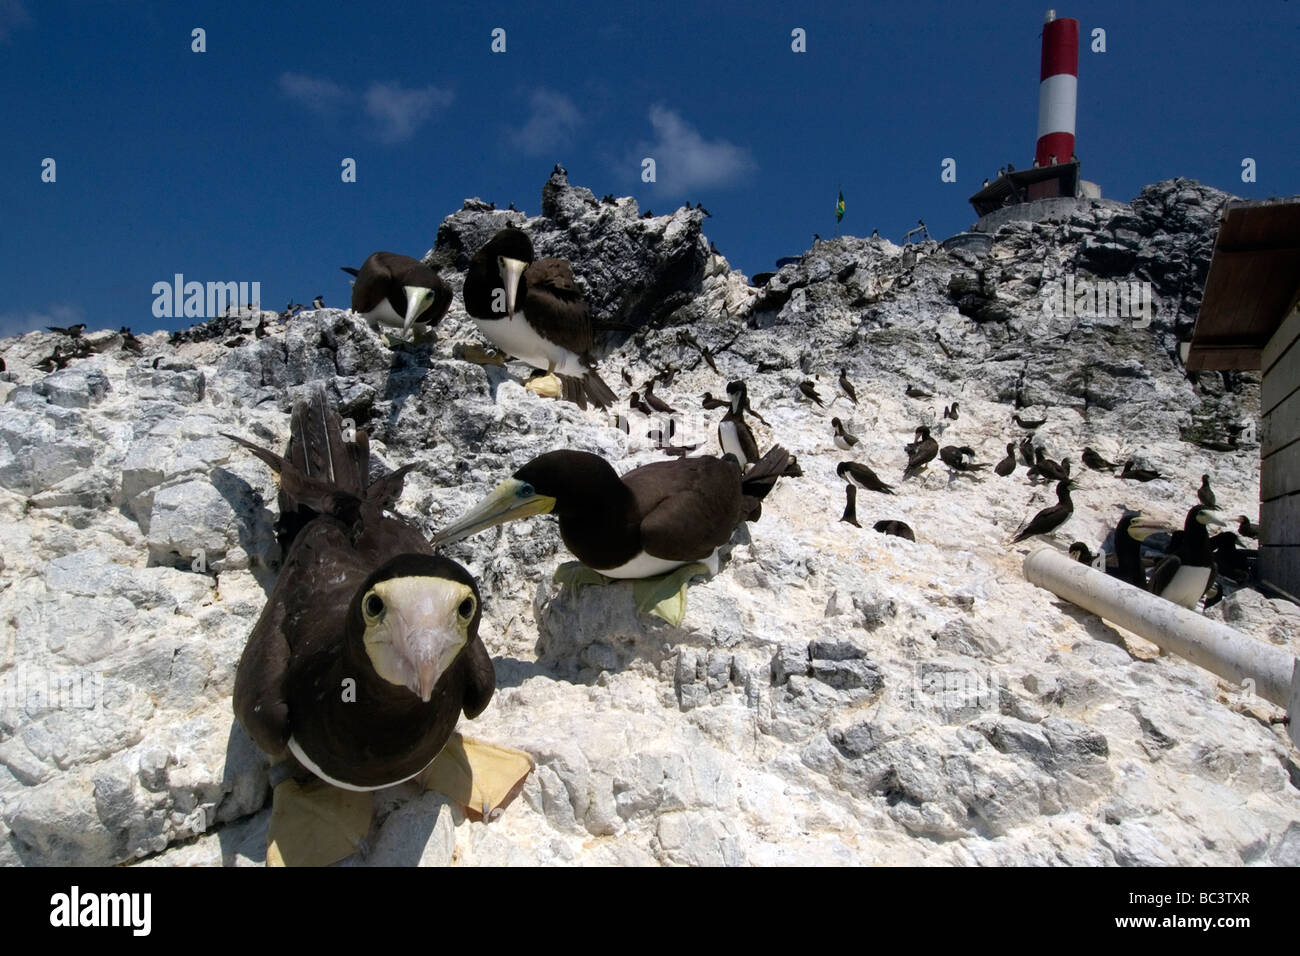 Brown Booby, Sula leucogaster  - protecting its nest from danger at a rookery - Stock Image